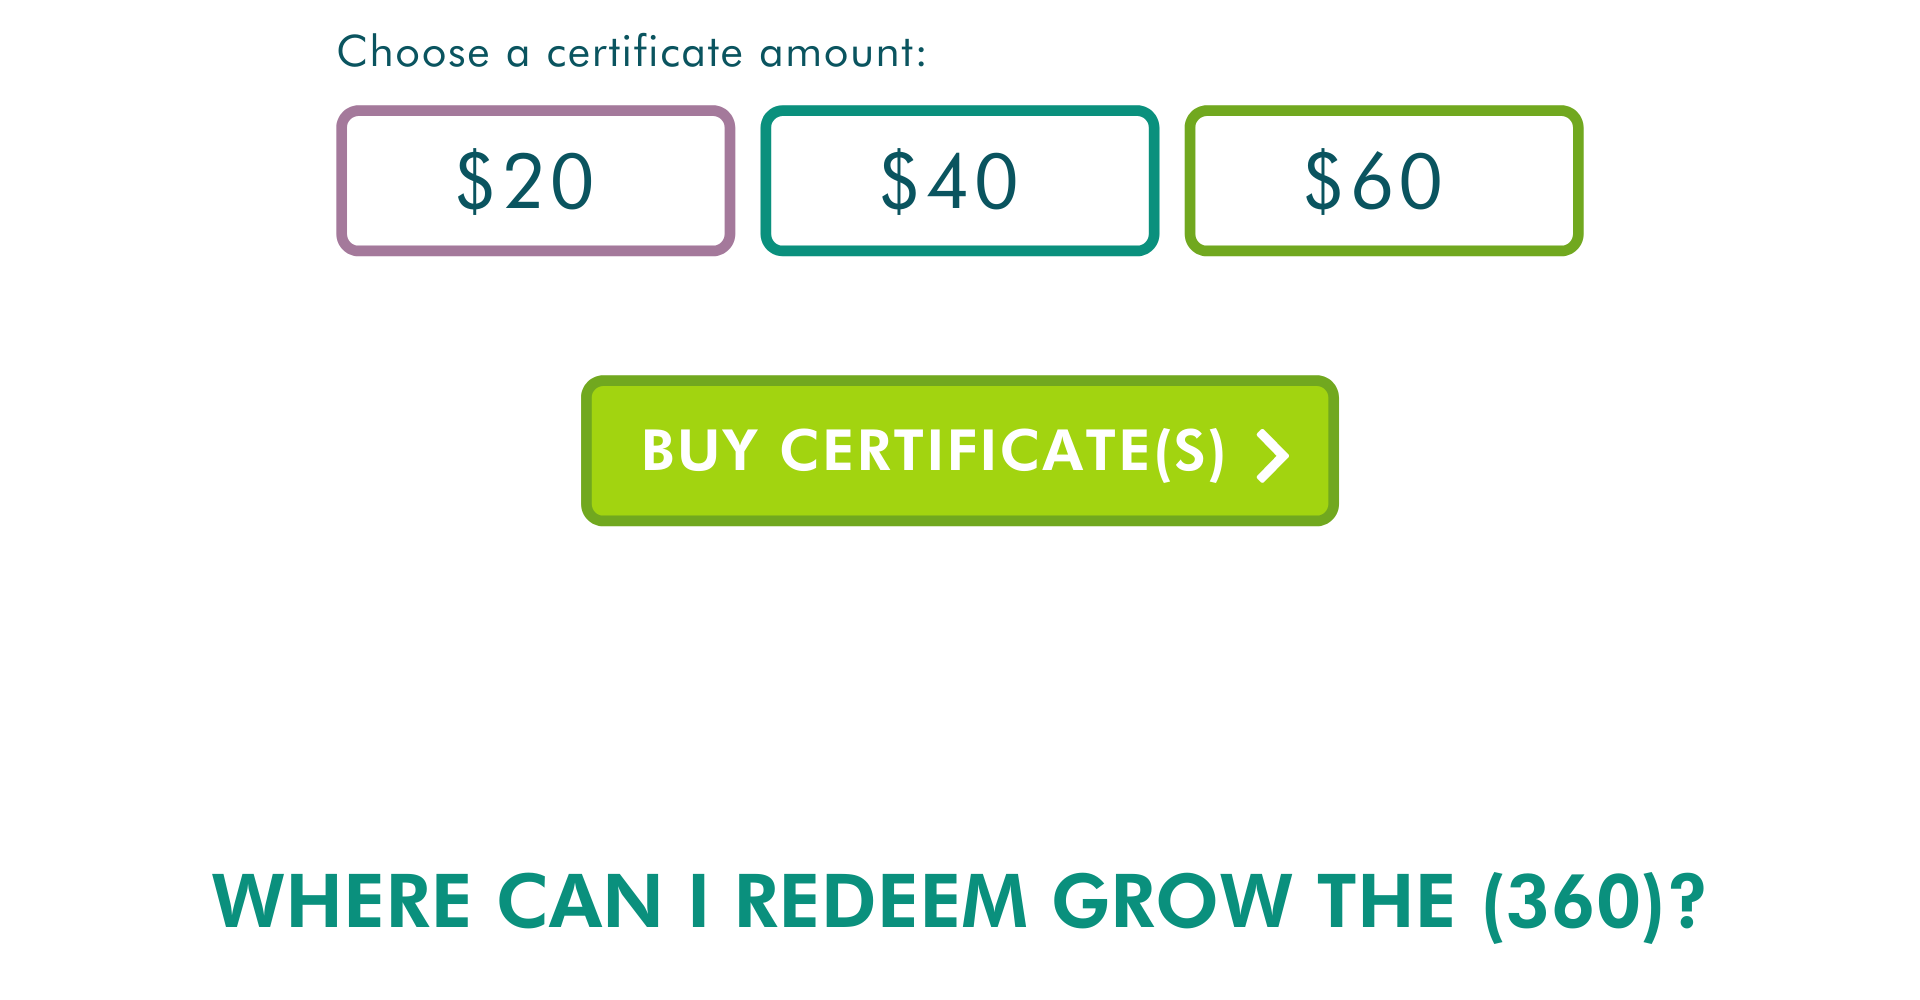 where can i redeem grow the 360 buy certificates 20 40 60 $